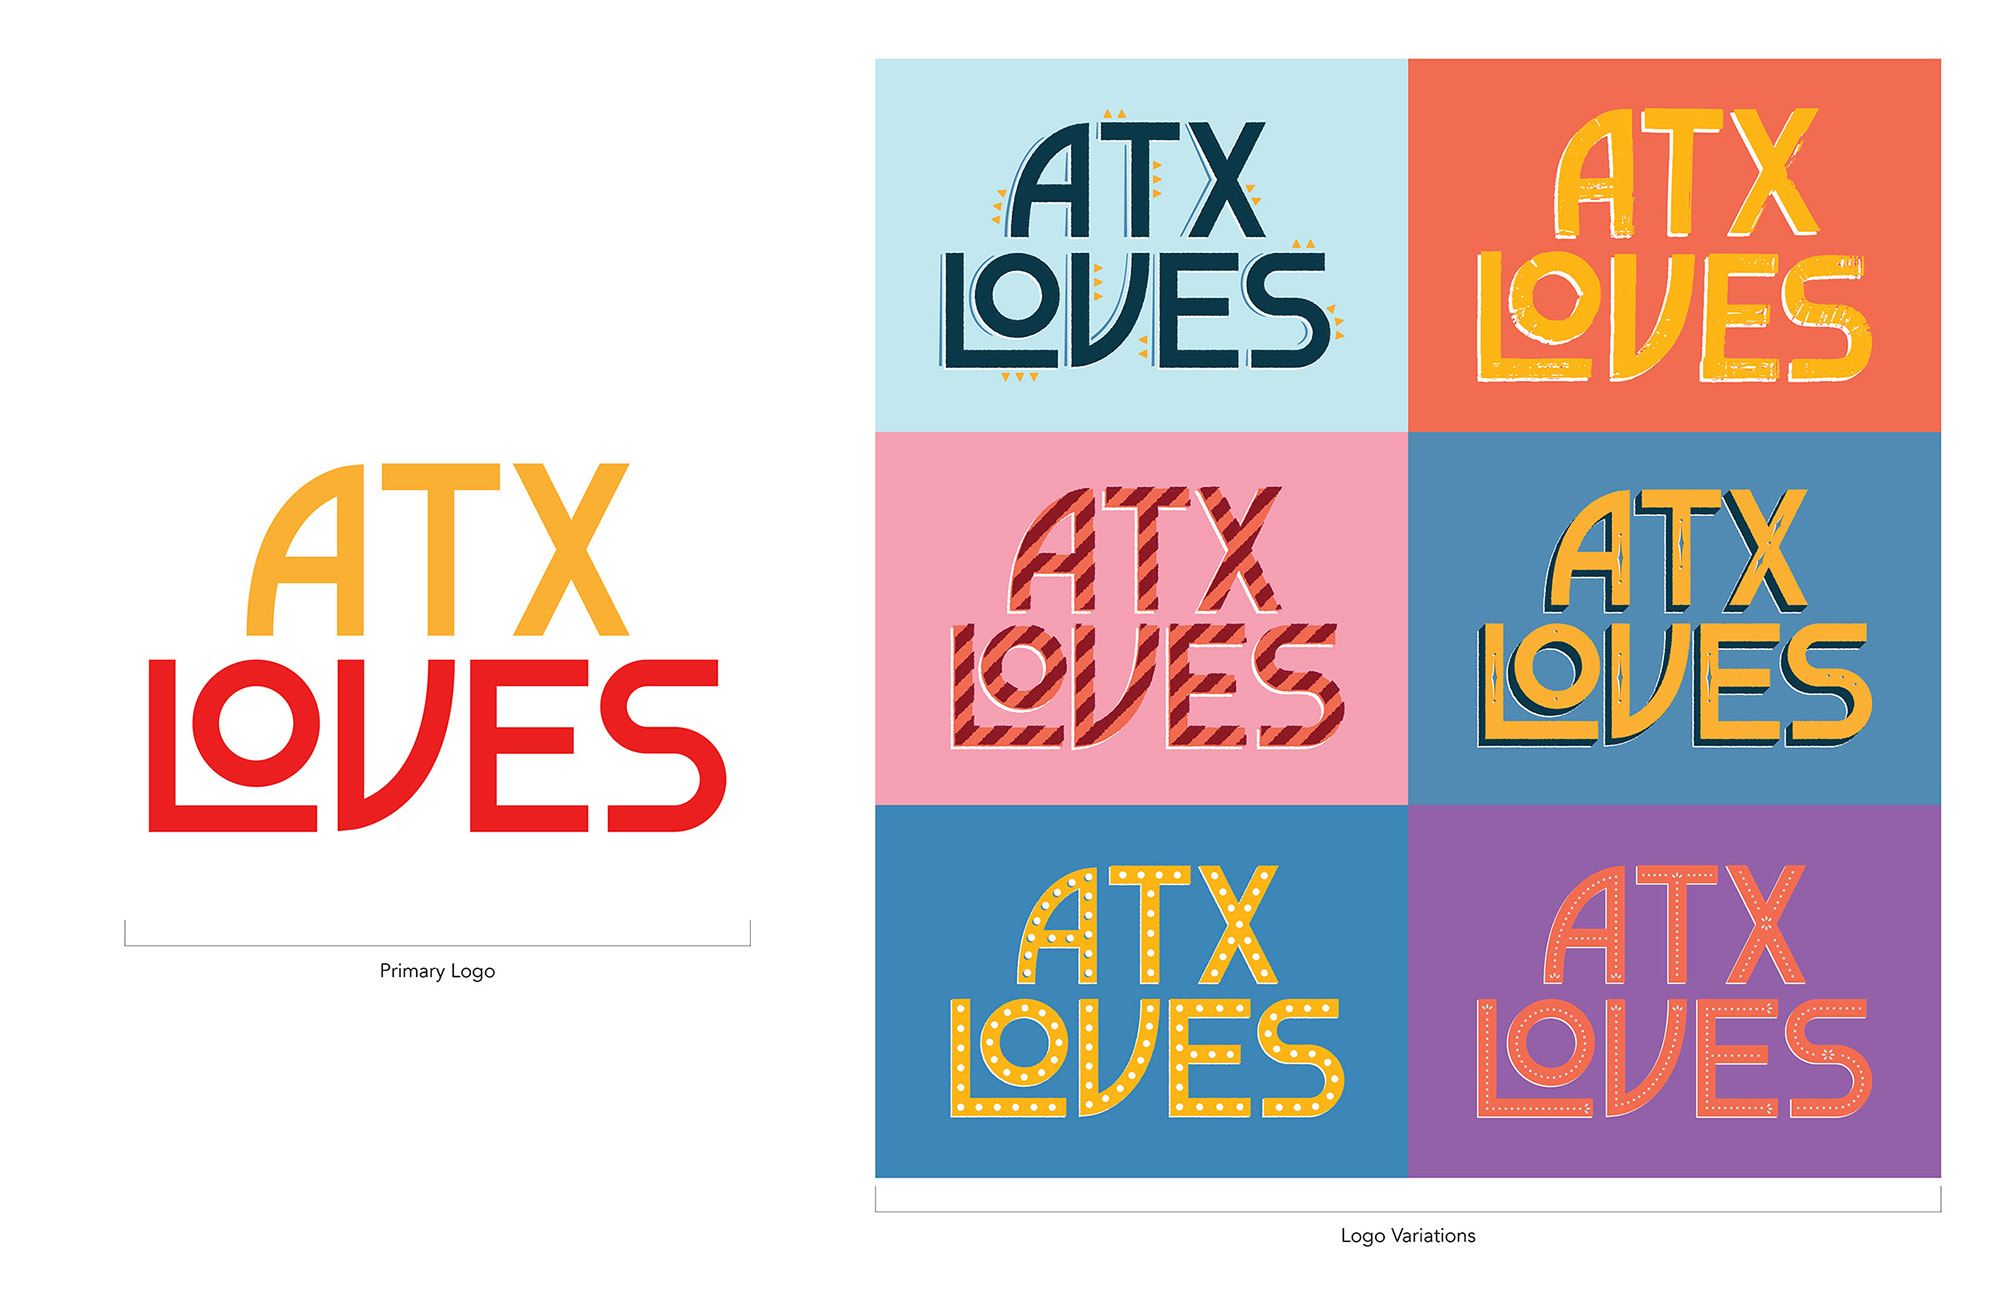 Different versions of the ATXLoves logo in different color schemes.